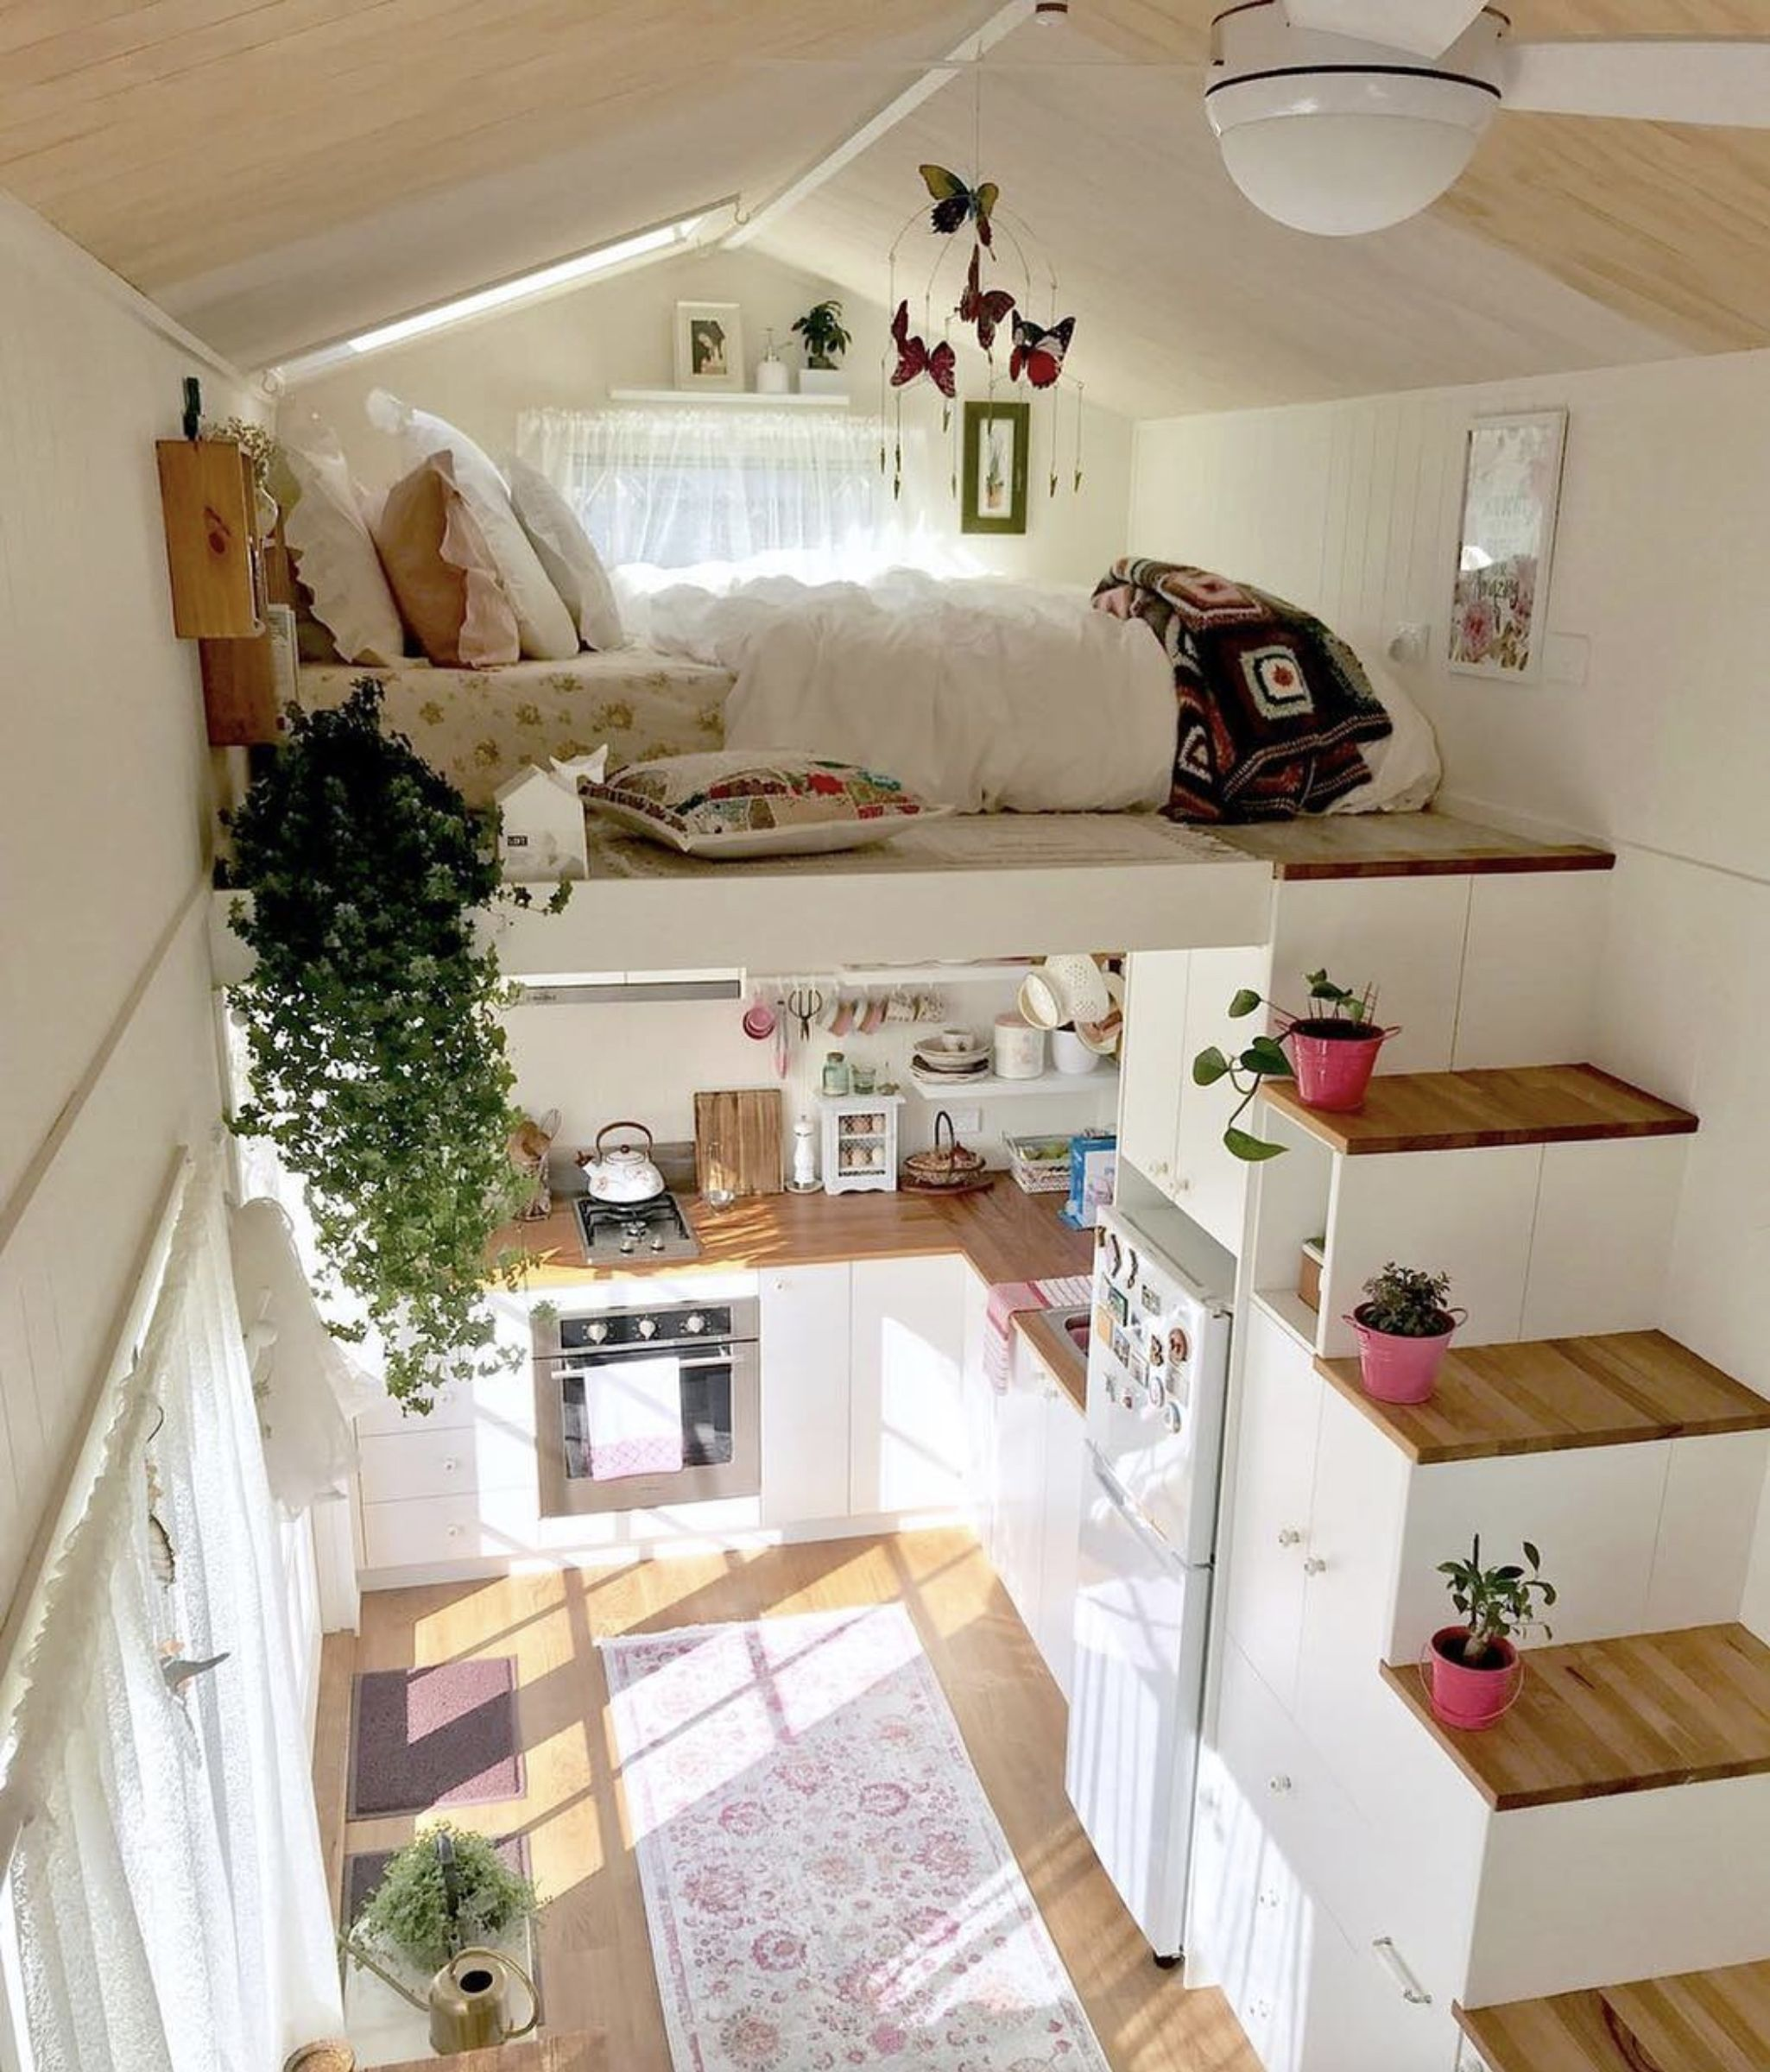 A Functional And Beautiful Tiny House On Wheels By